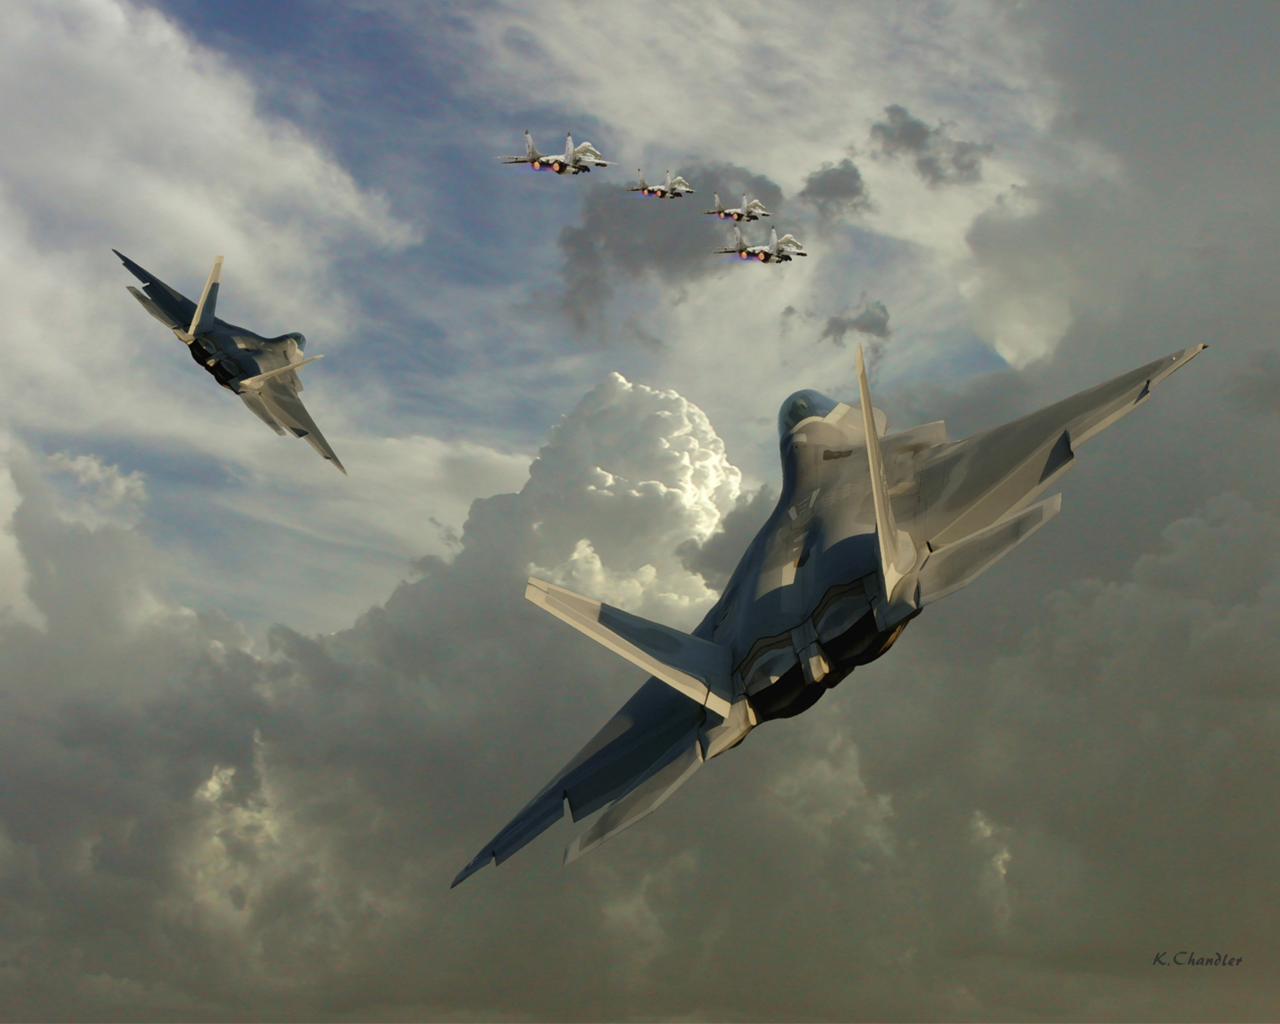 rate select rating give f 22 raptor 1 5 give f 22 1280x1024